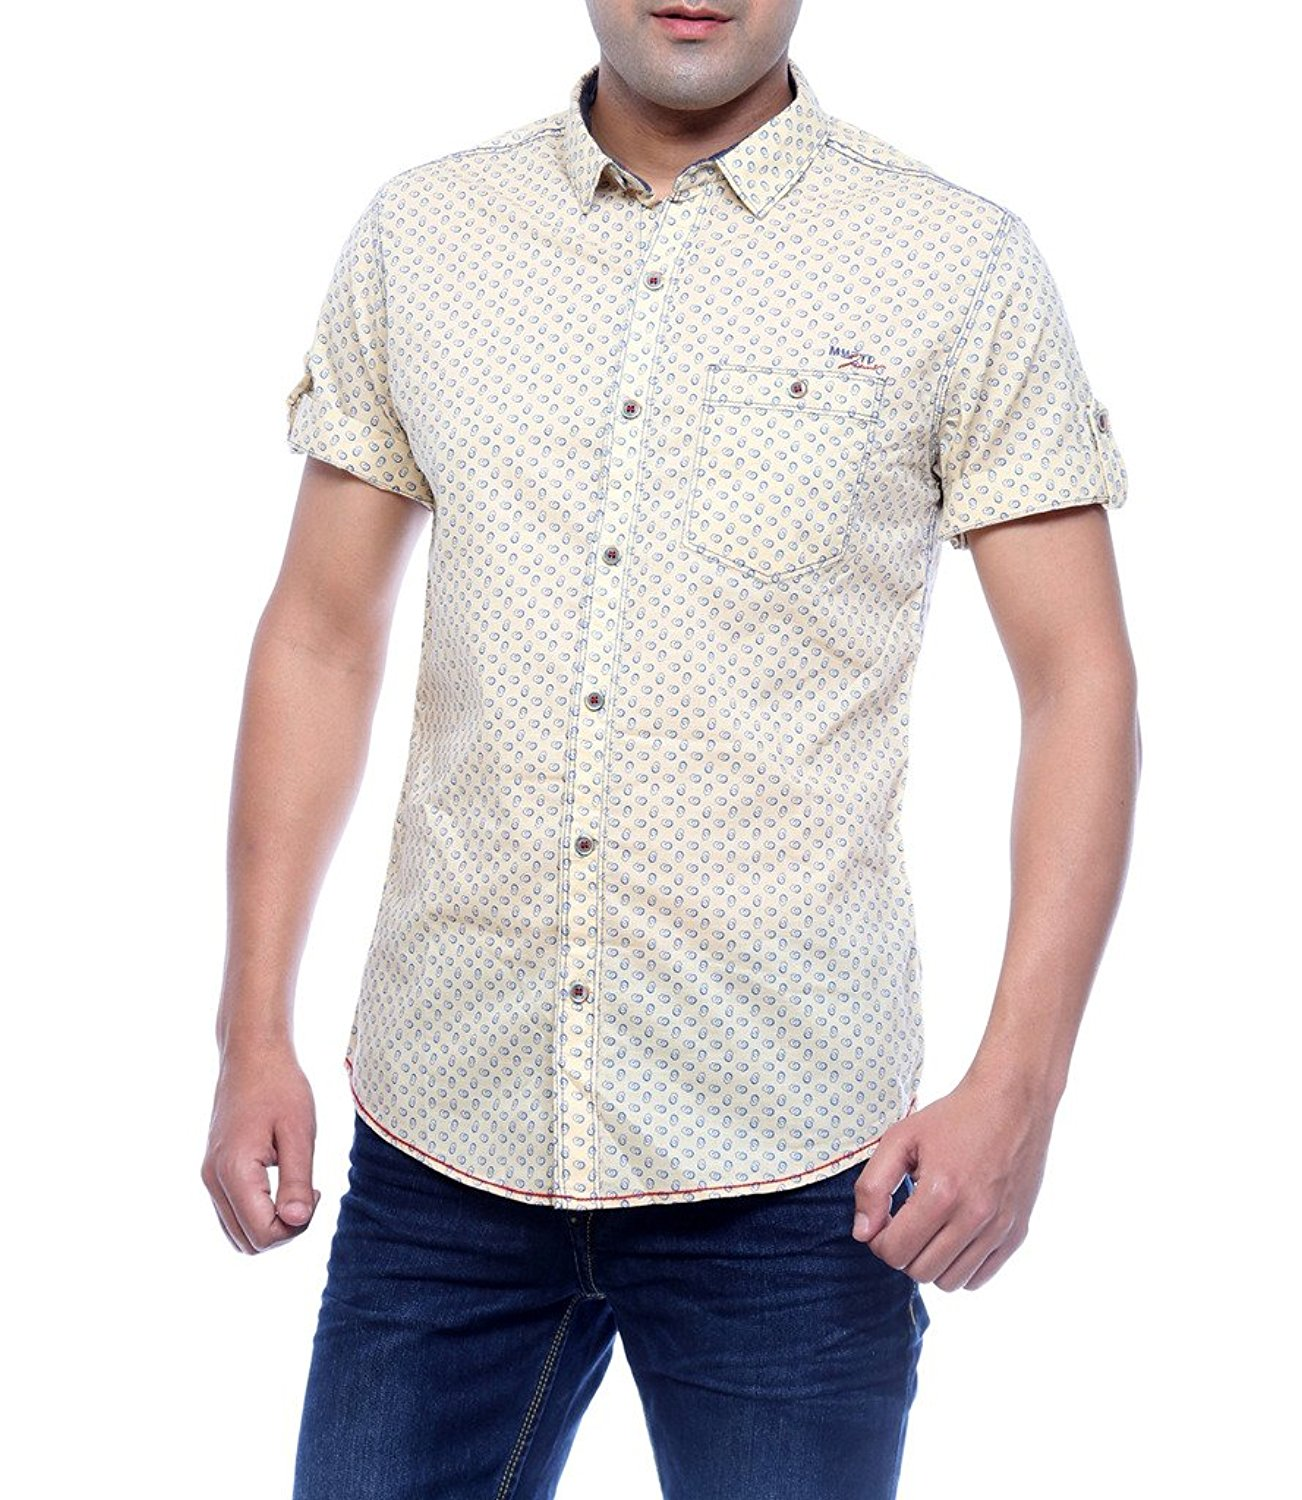 mufti shirts for men